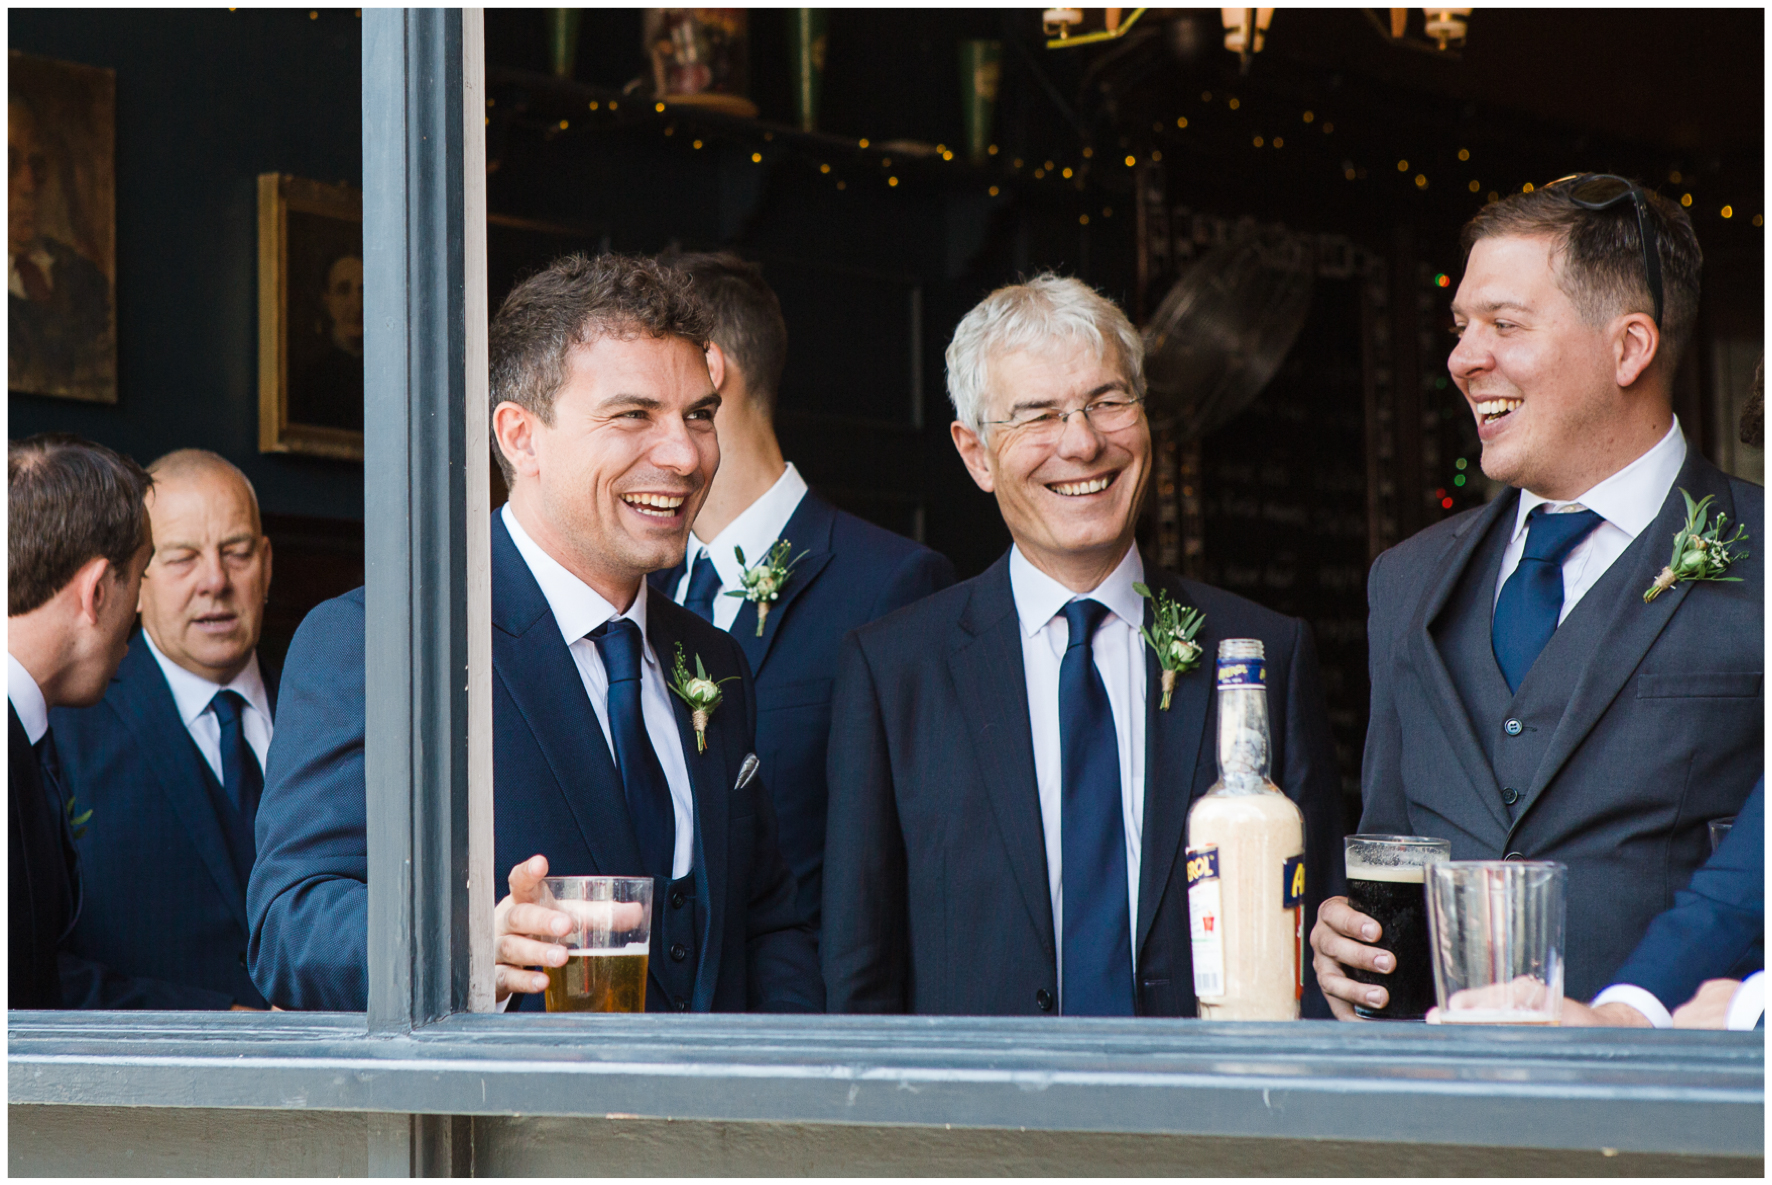 Lucy Davenport Photography, Town Hall Hotel, London wedding, Rock My Wedding, groomsmen, ushers lunch